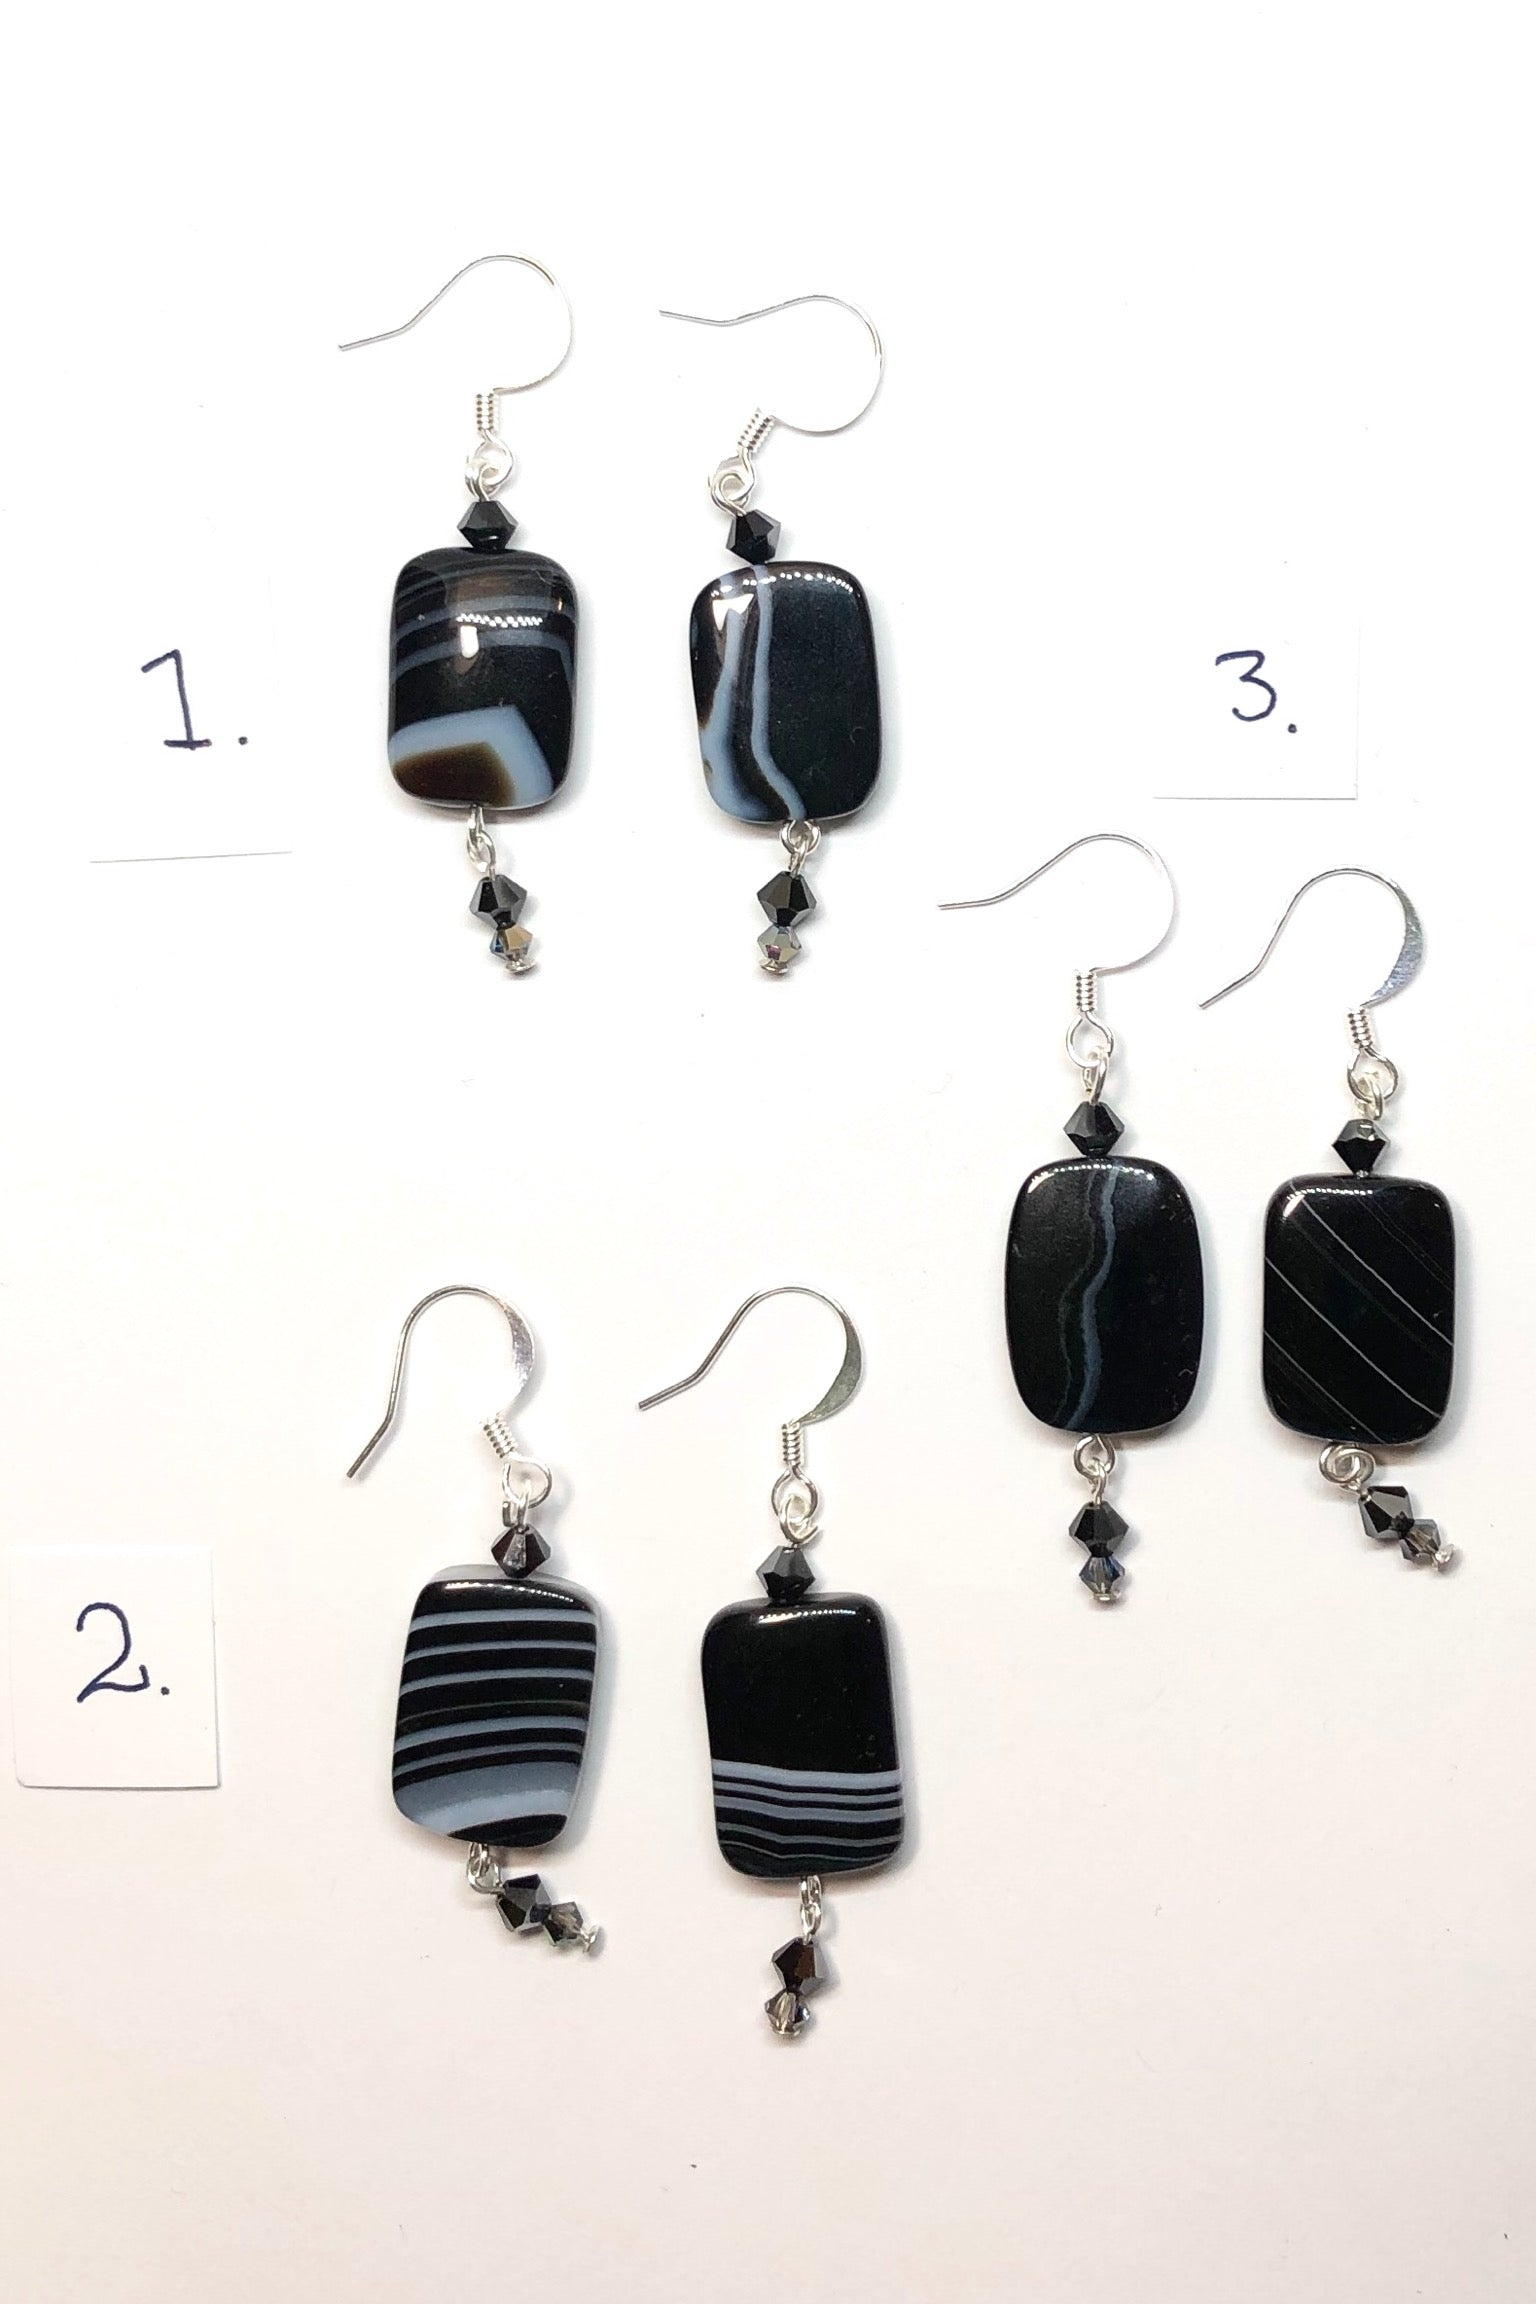 Earrings Rock Banded Black Onyx is a boho luxe style earrings featuring drop style earrings, 925 silver hook earrings and polished black banded onyx shaped stone with a swarovski crystal beads.